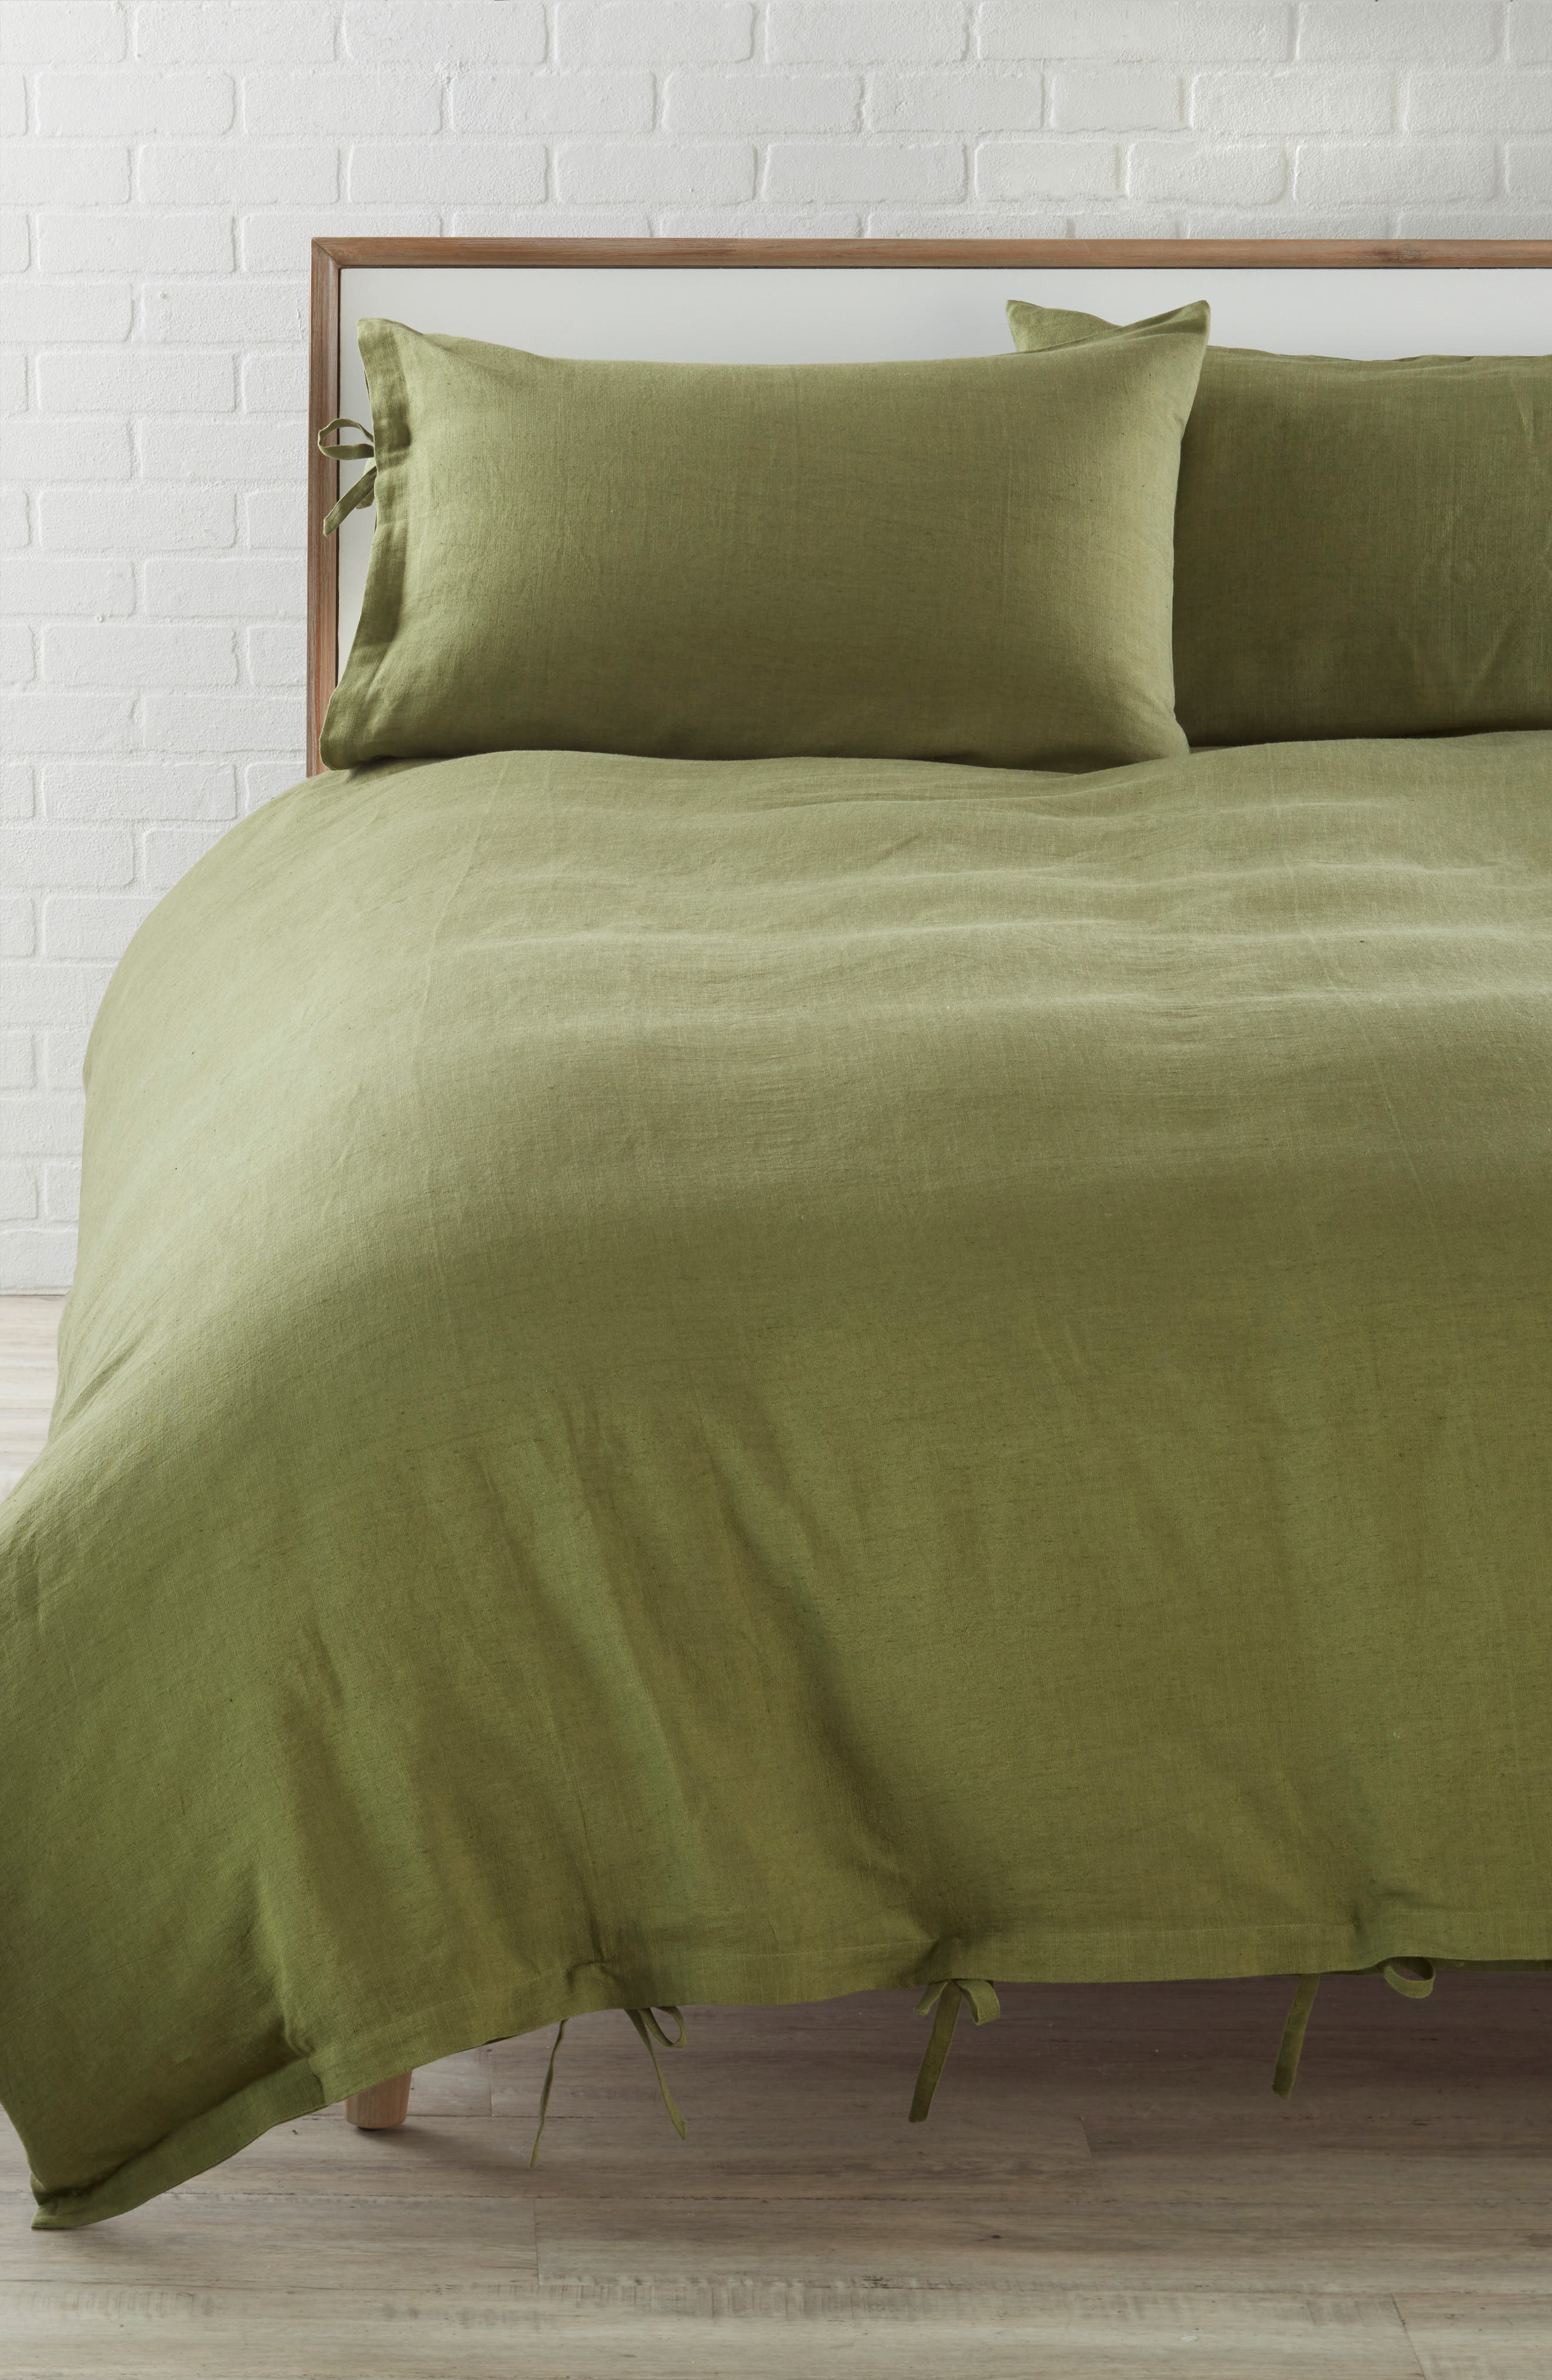 Relaxed Cotton & Linen Duvet Cover,                         Main,                         color, OLIVE SPICE